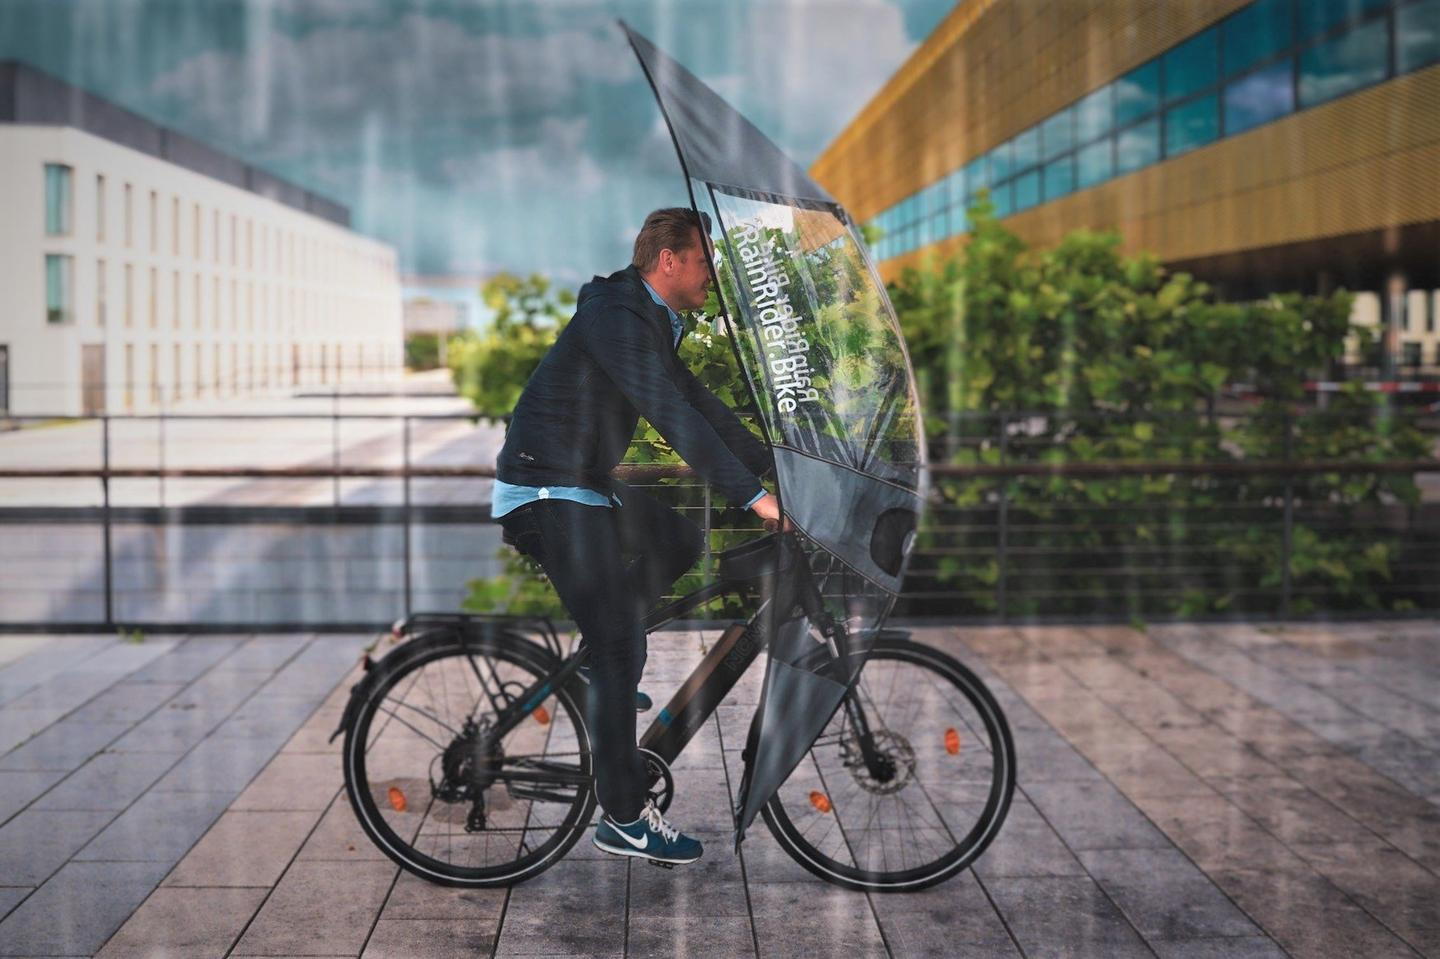 The Softtop is claimed to be compatible with almost all traditional upright-style bicycles